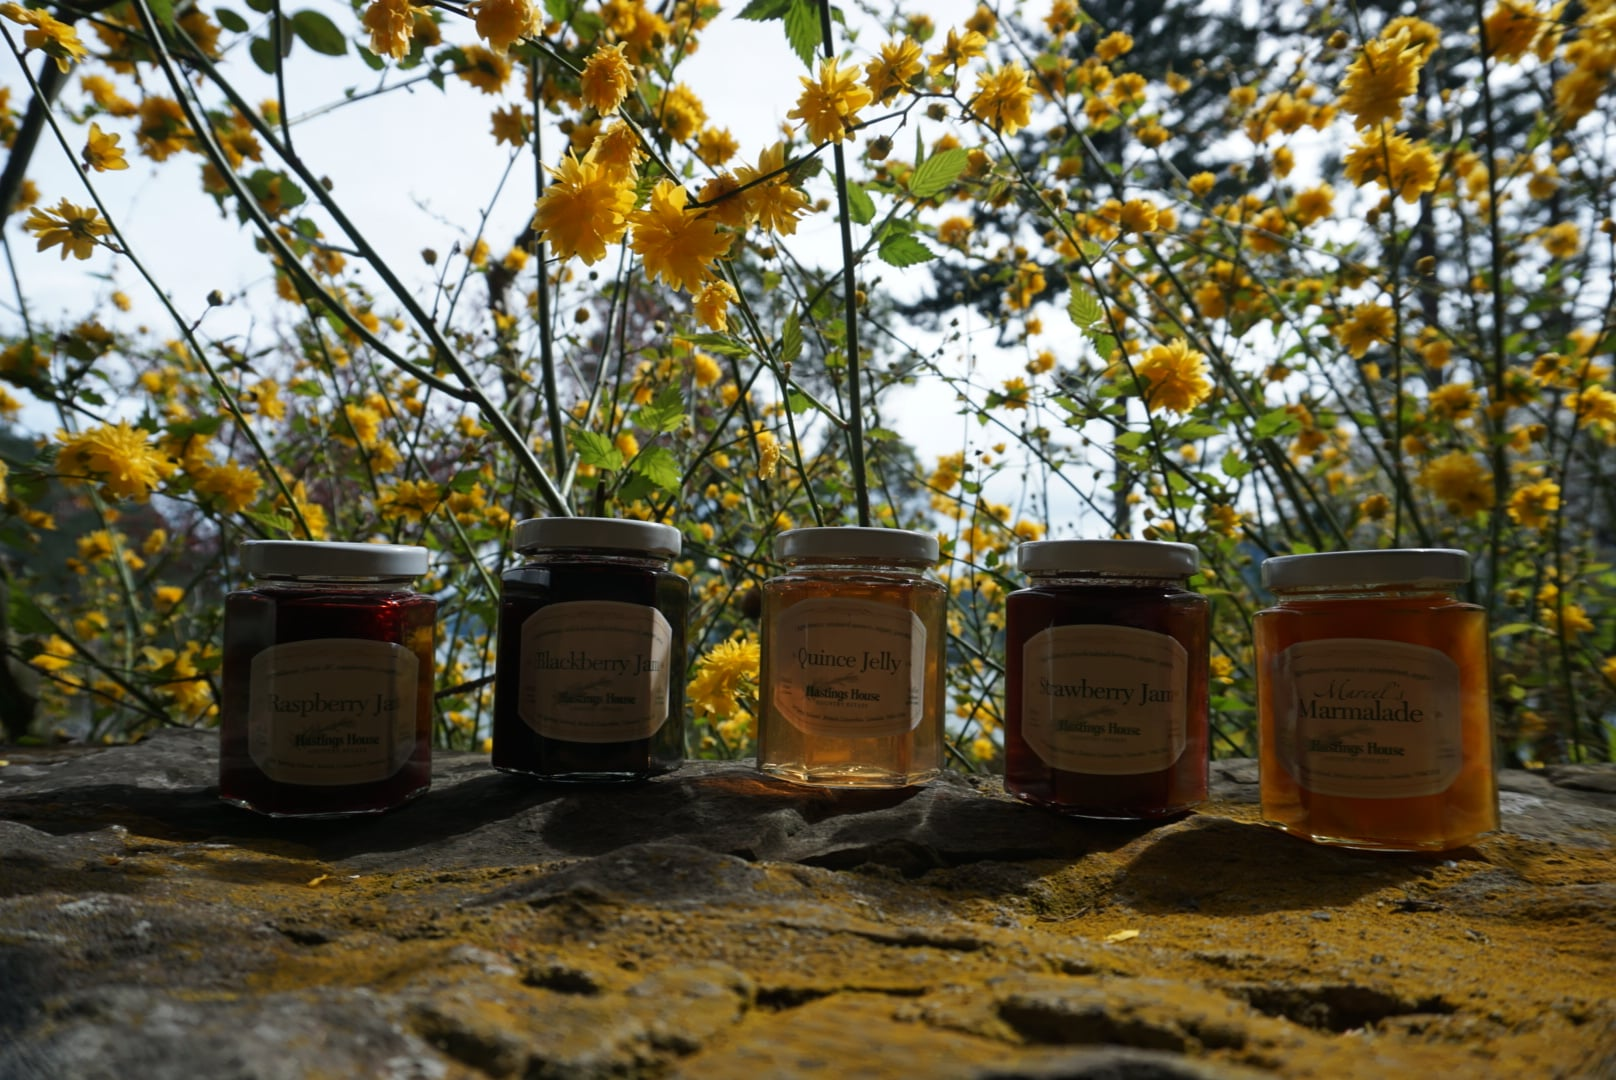 The Story Of Our Jams And Jellies